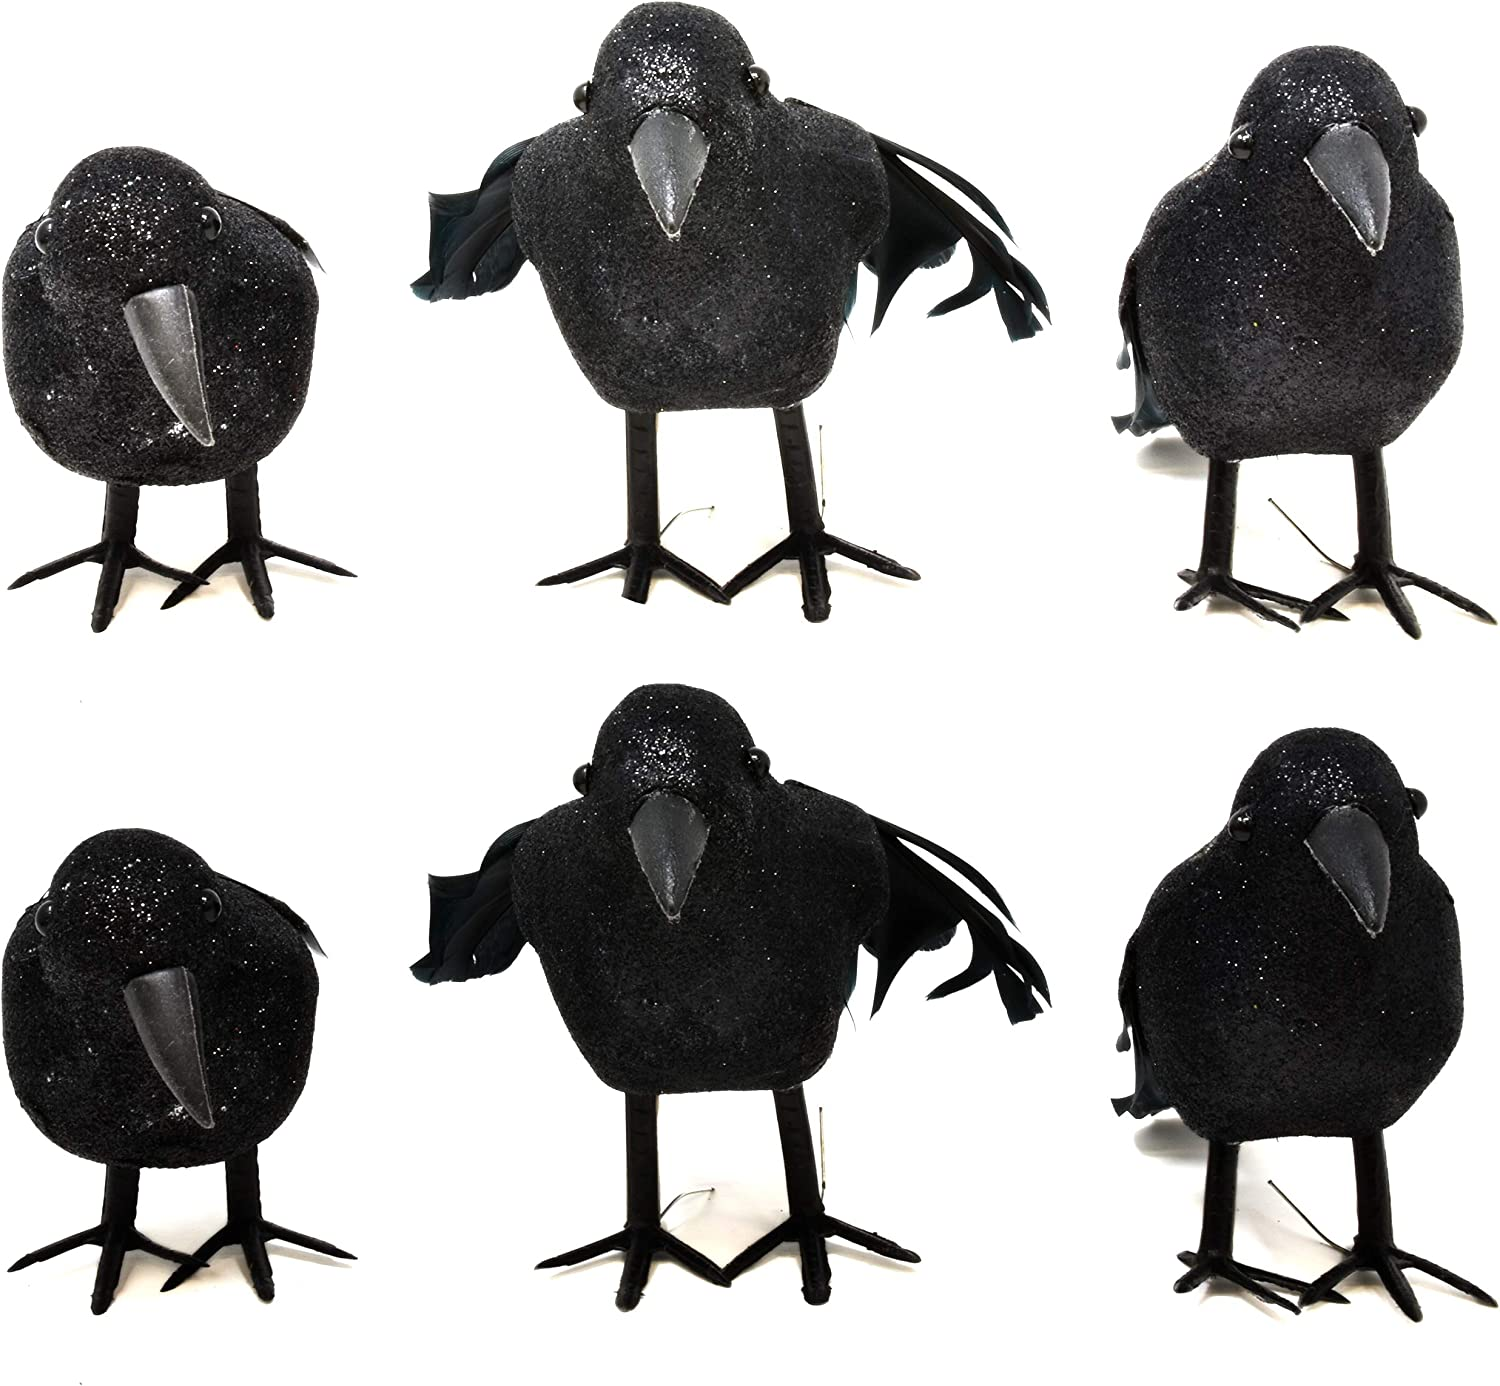 "Gift Boutique Halloween Black Feathered Crows 6 Pack Artificial Realistic Fake Scary Bird Ravens Figurine Ornaments 6.5"" for Indoor Outdoor Statue Props Art and Crafts Party Decorations"